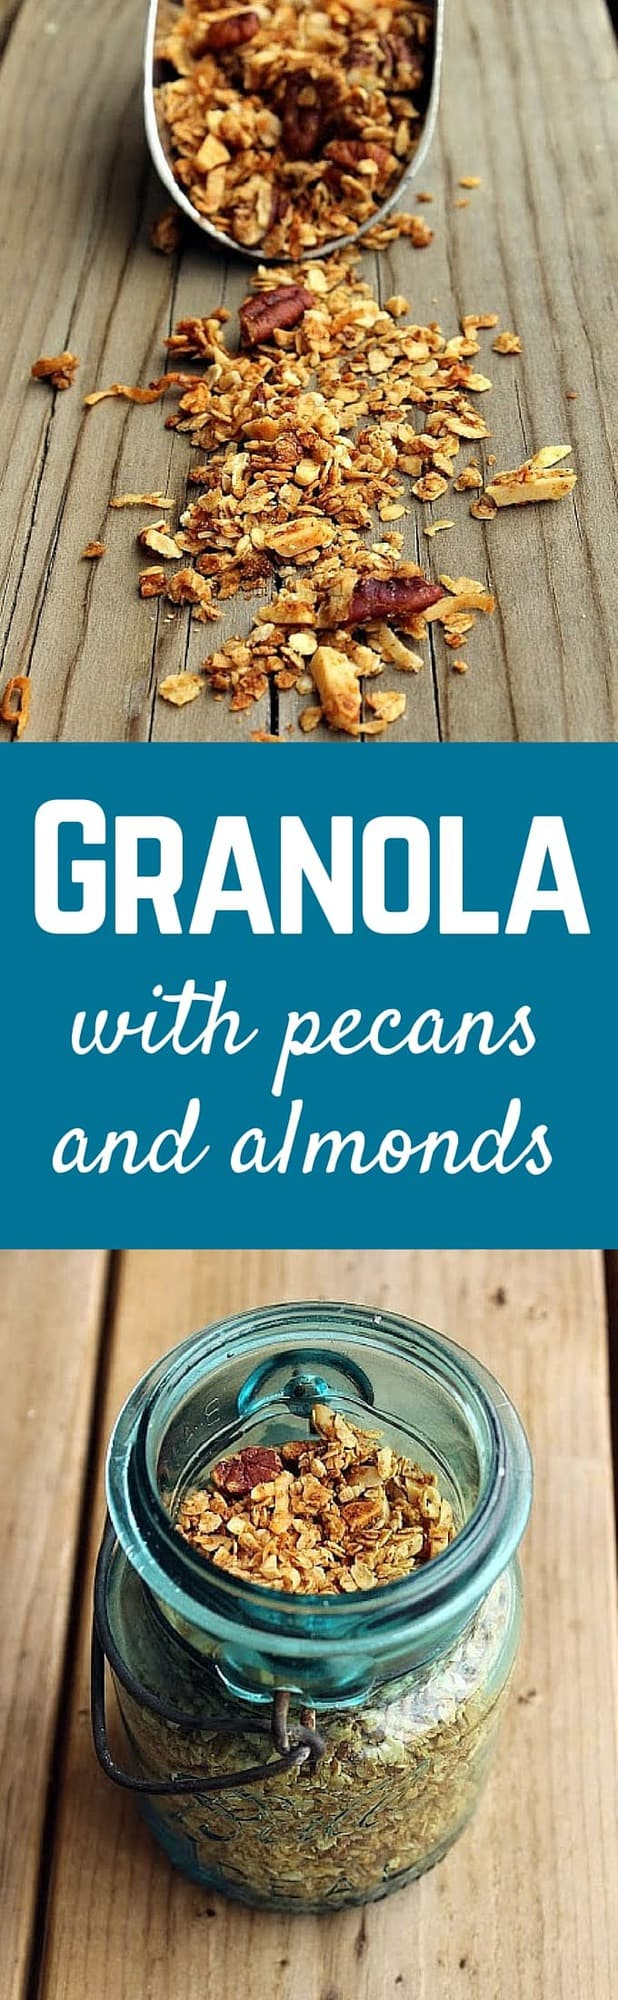 Homemade granola recipe with pecans and almonds gets made on a nearly weekly basis at our house! You won't believe how easy it is to make granola at home. Make it today and enjoy it all week! Try all the fun variations in the recipe and you'll never be bored!